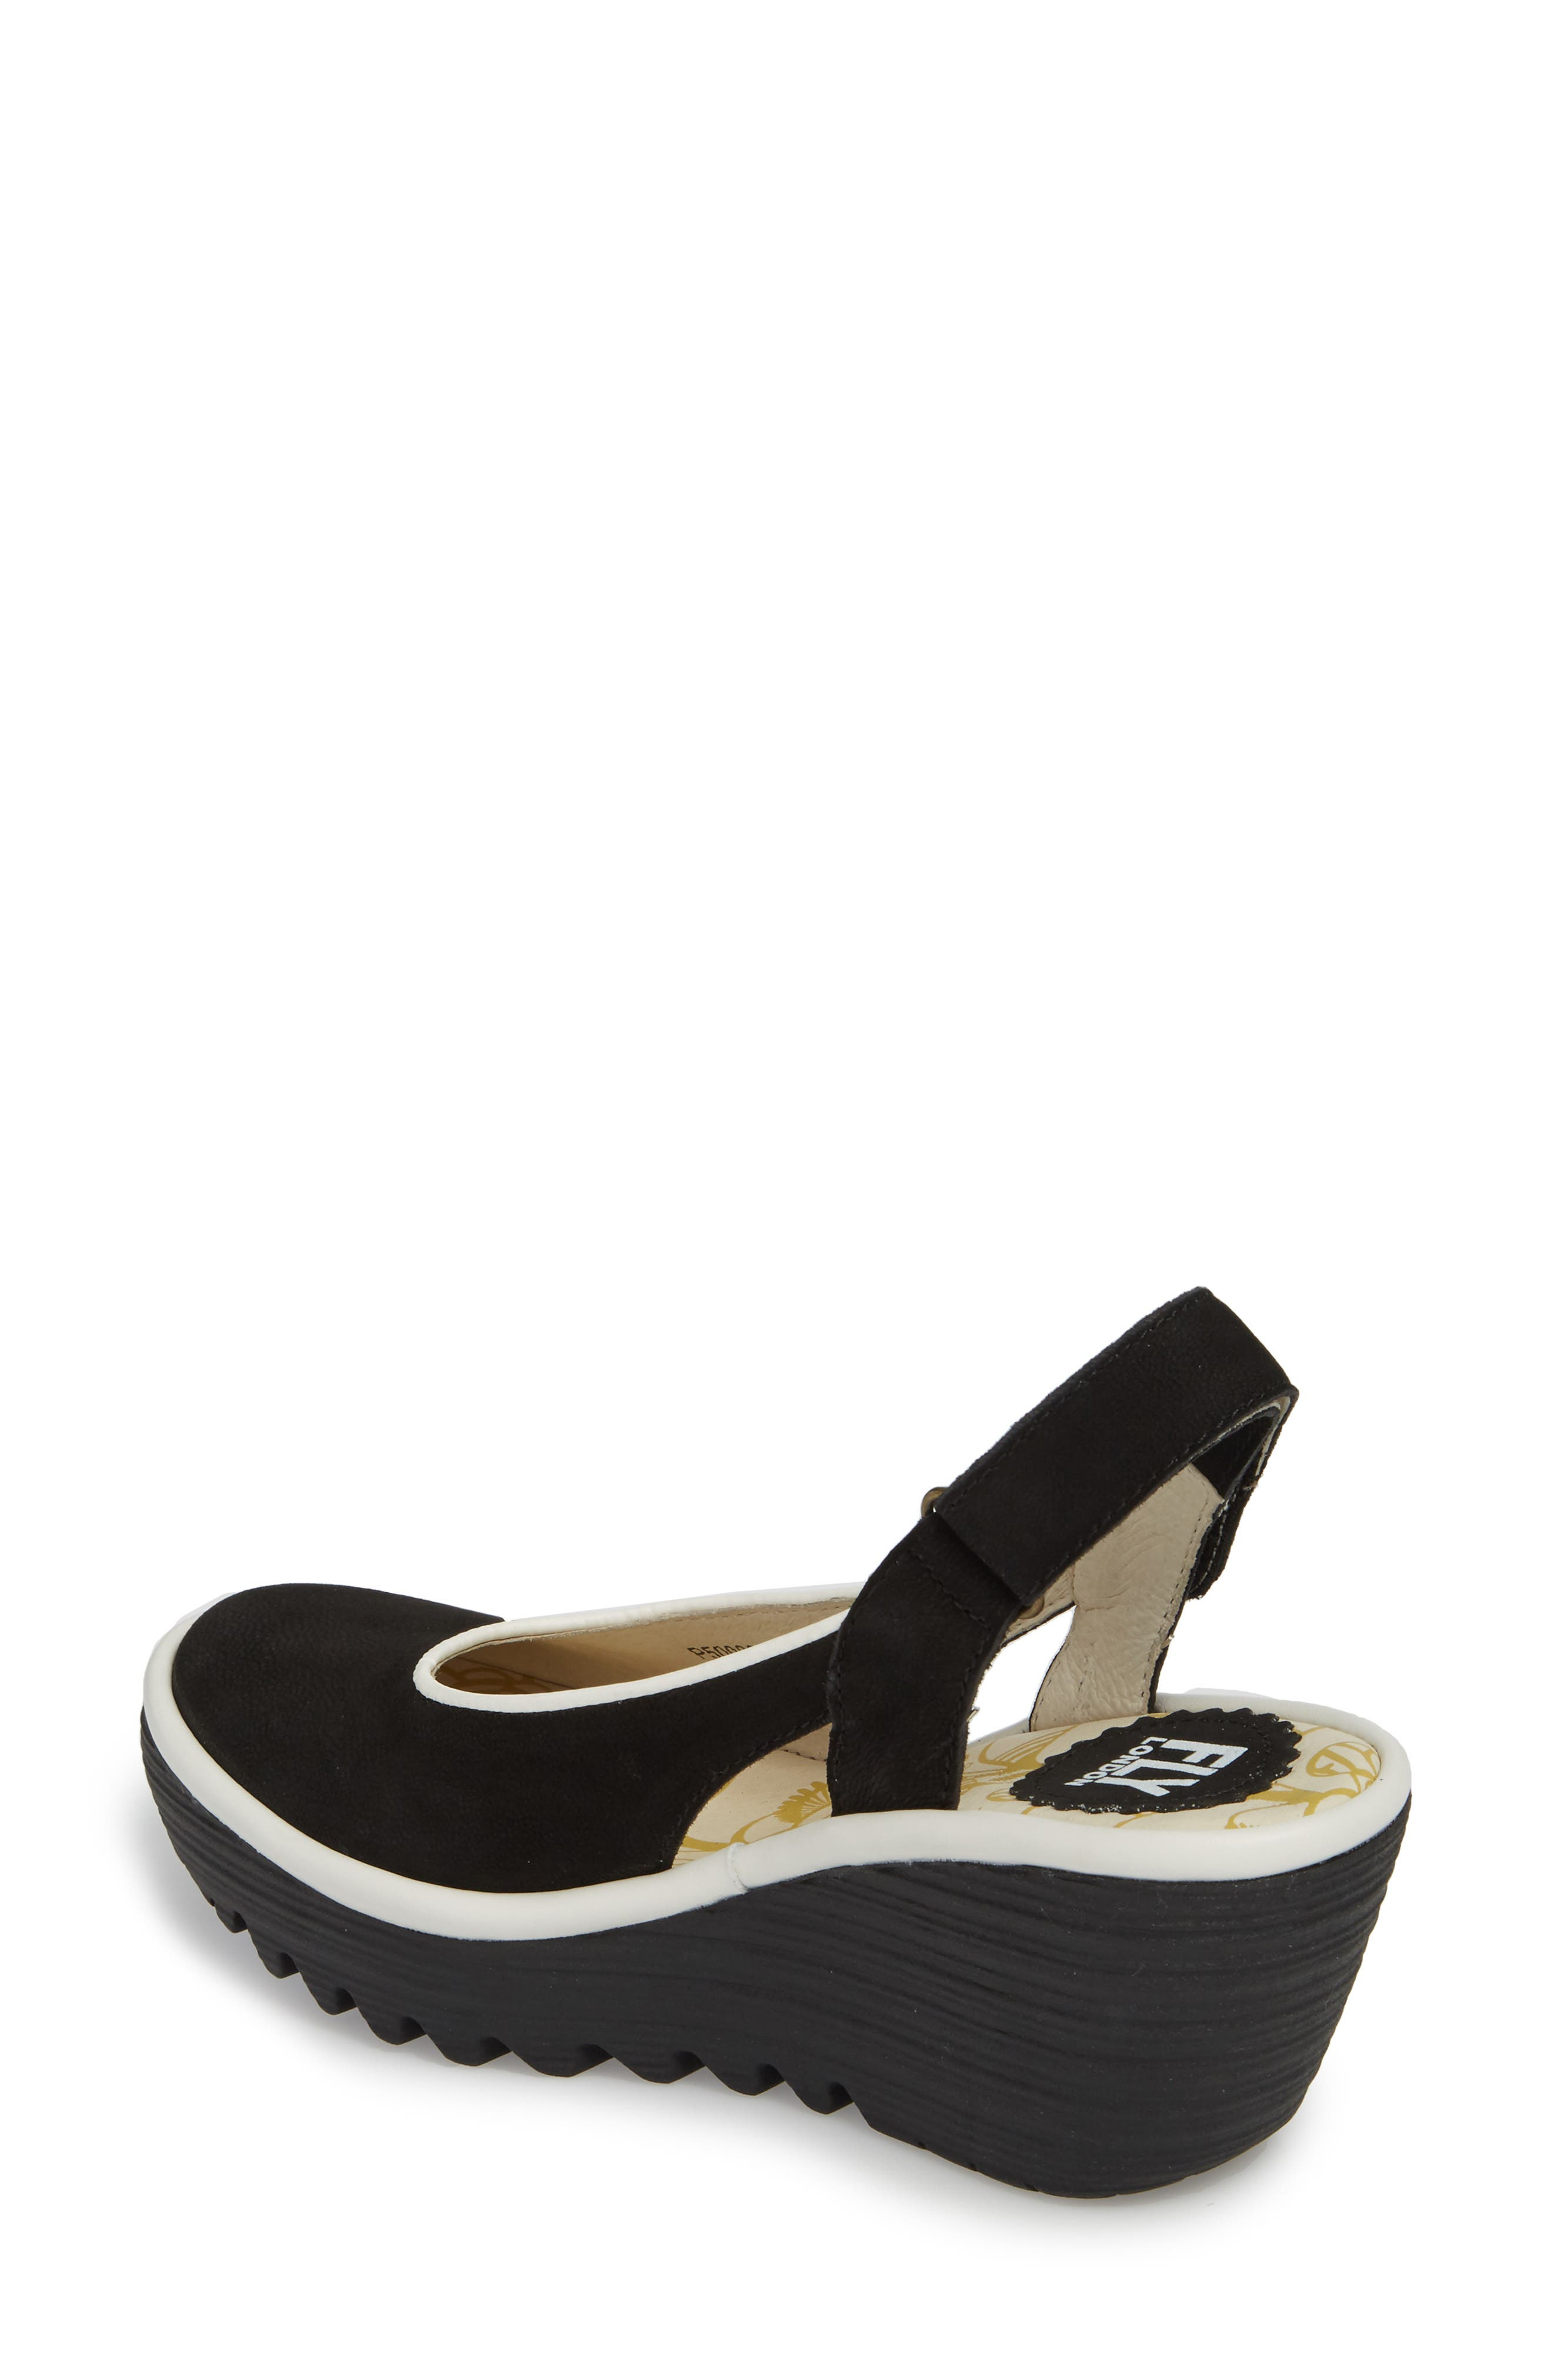 Yipi Wedge Sandal,                             Alternate thumbnail 2, color,                             BLACK/ OFF WHITE MIX LEATHER